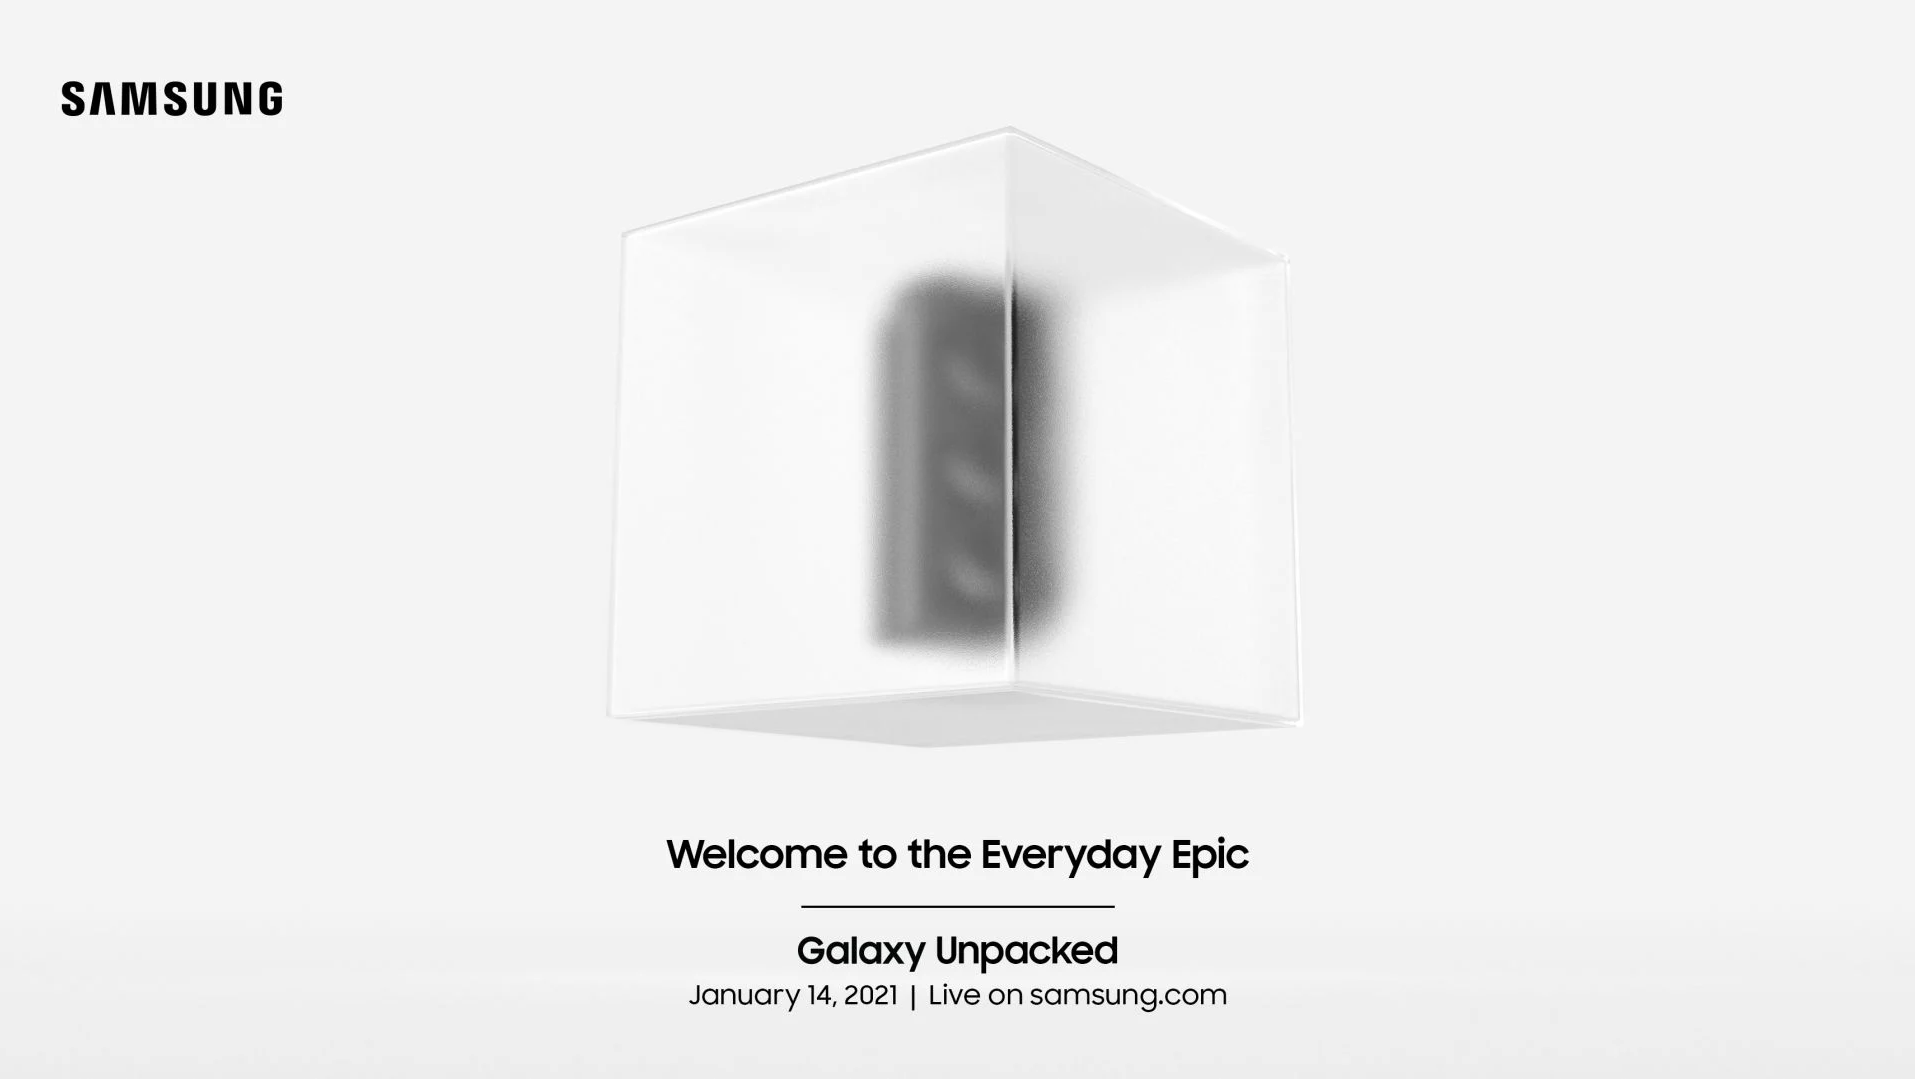 Samsung Galaxy S21 Unpacked Everyday Epic